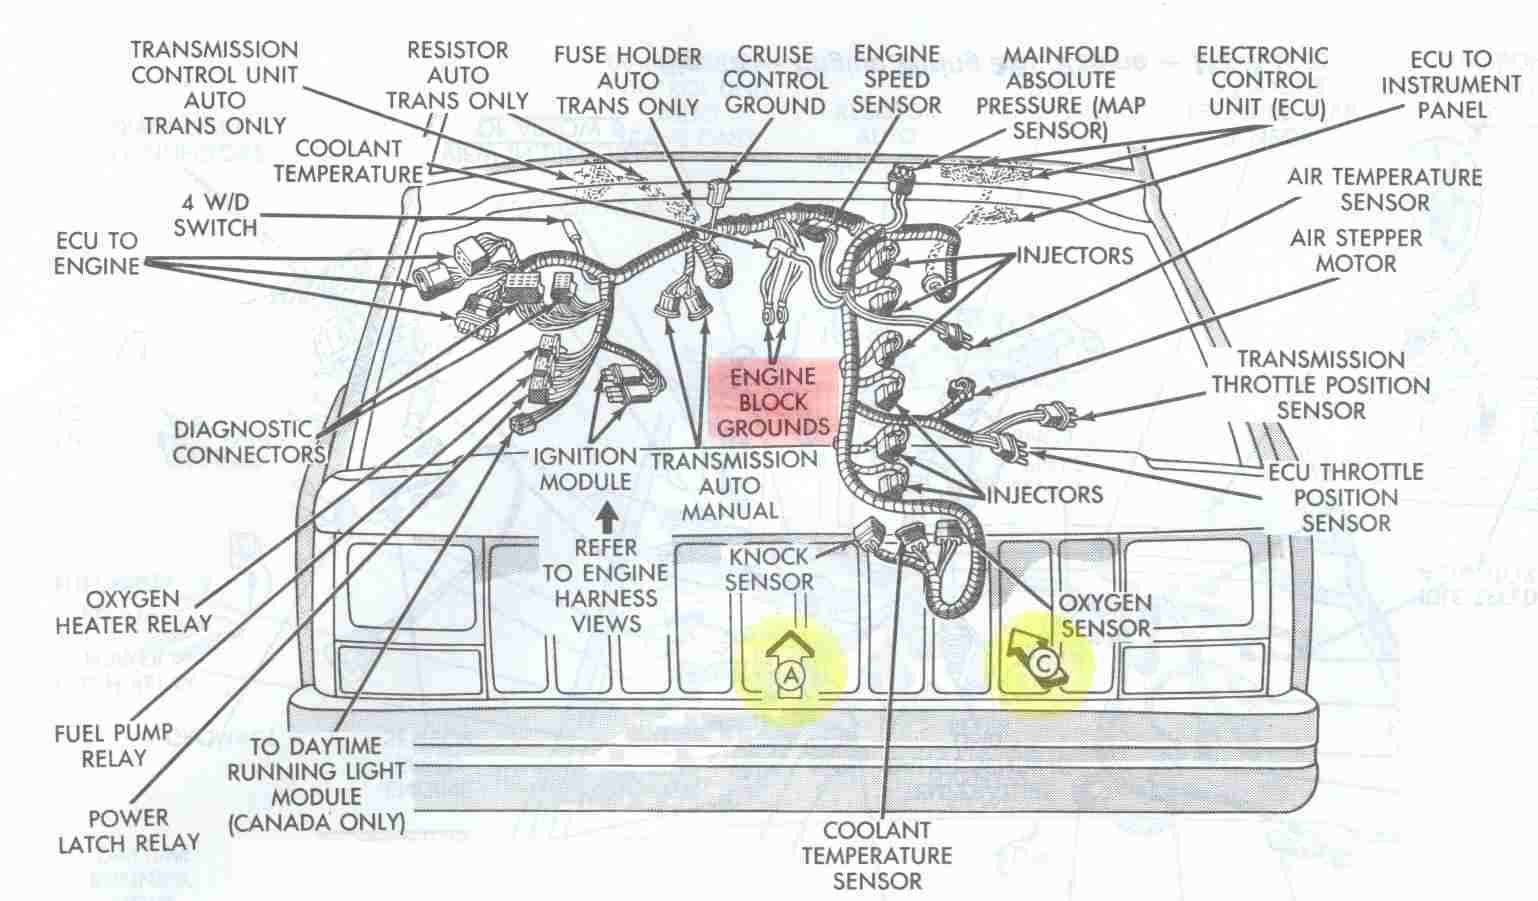 ab0134a7d9e021431187af597eb4aeca engine bay schematic showing major electrical ground points for 1990 jeep cherokee fuse box diagram at soozxer.org